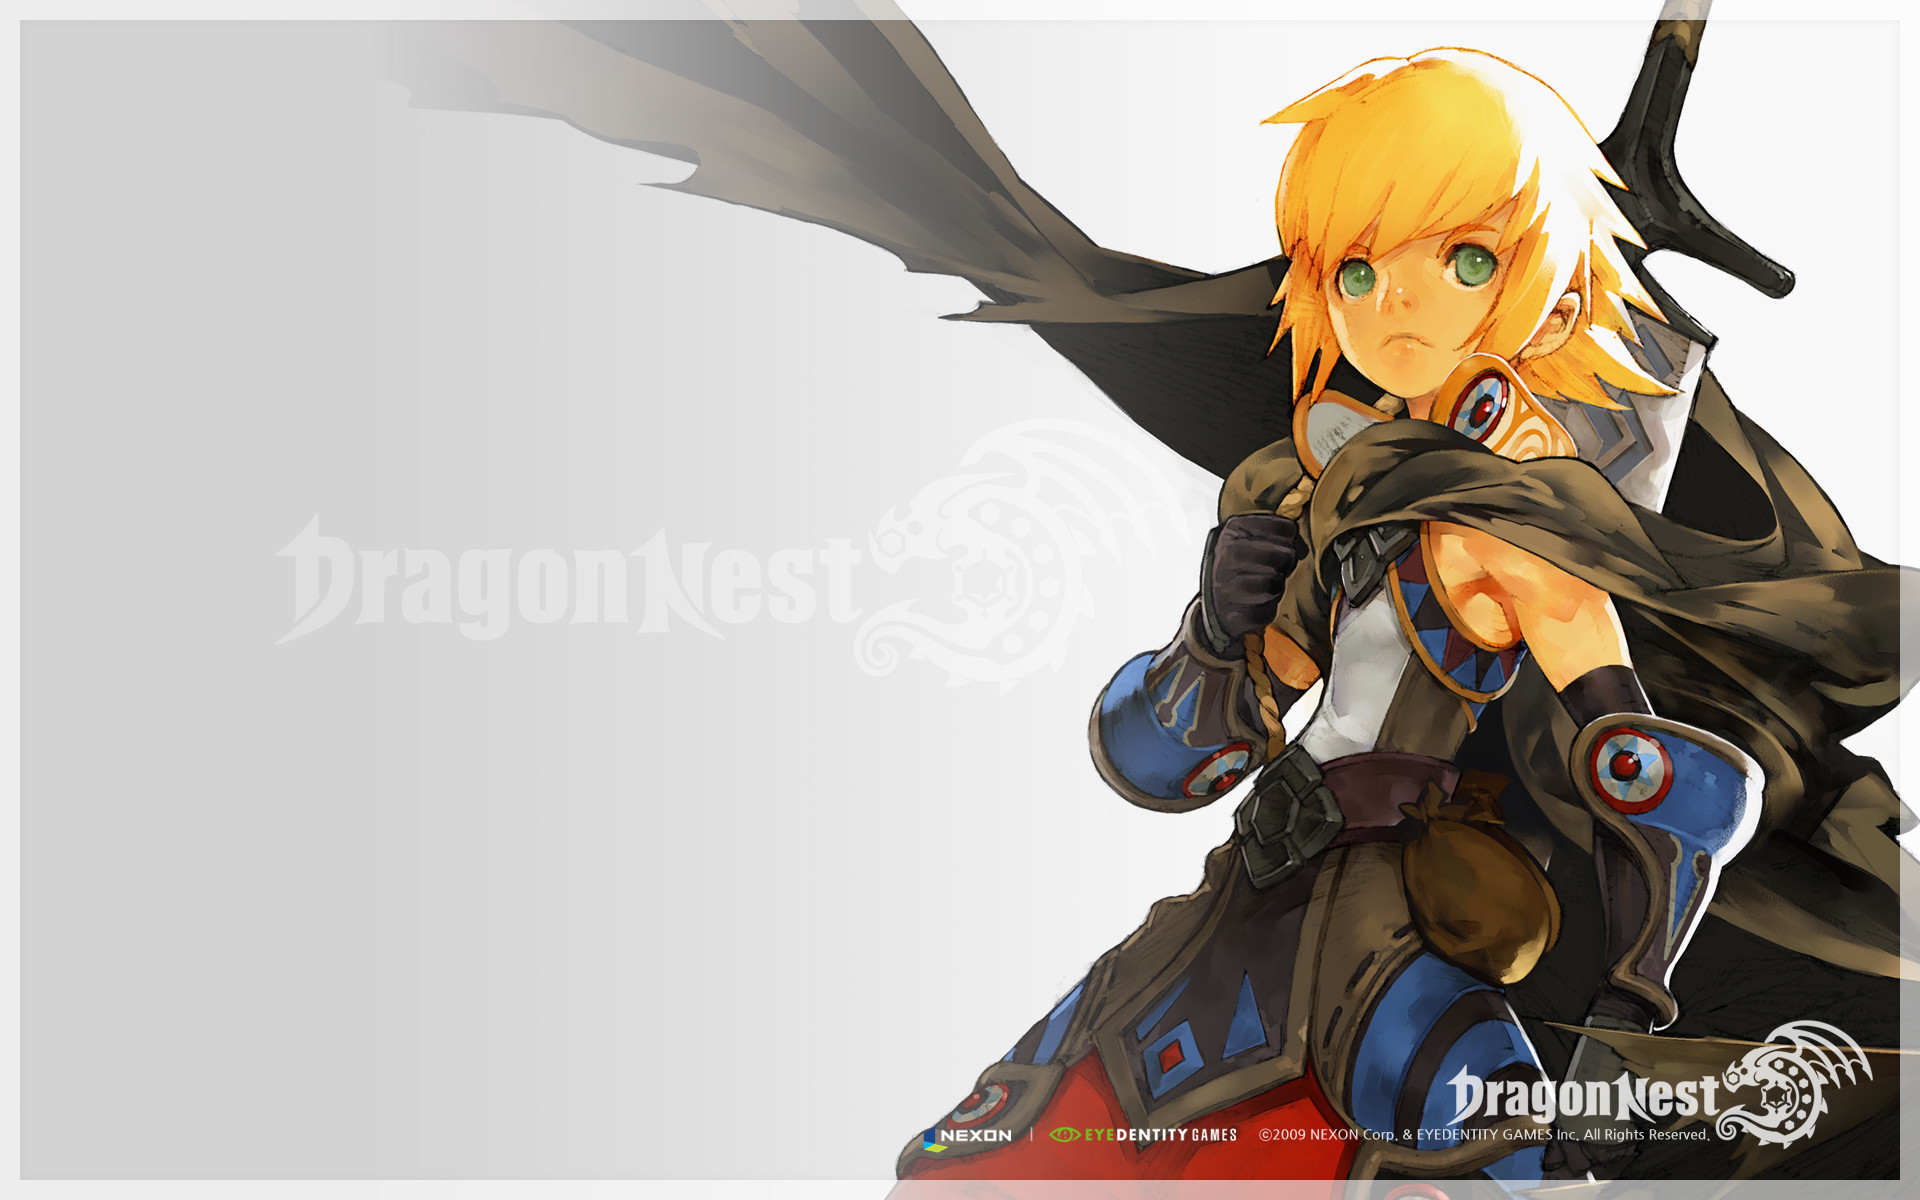 1920x1200 Dragon Nest picture